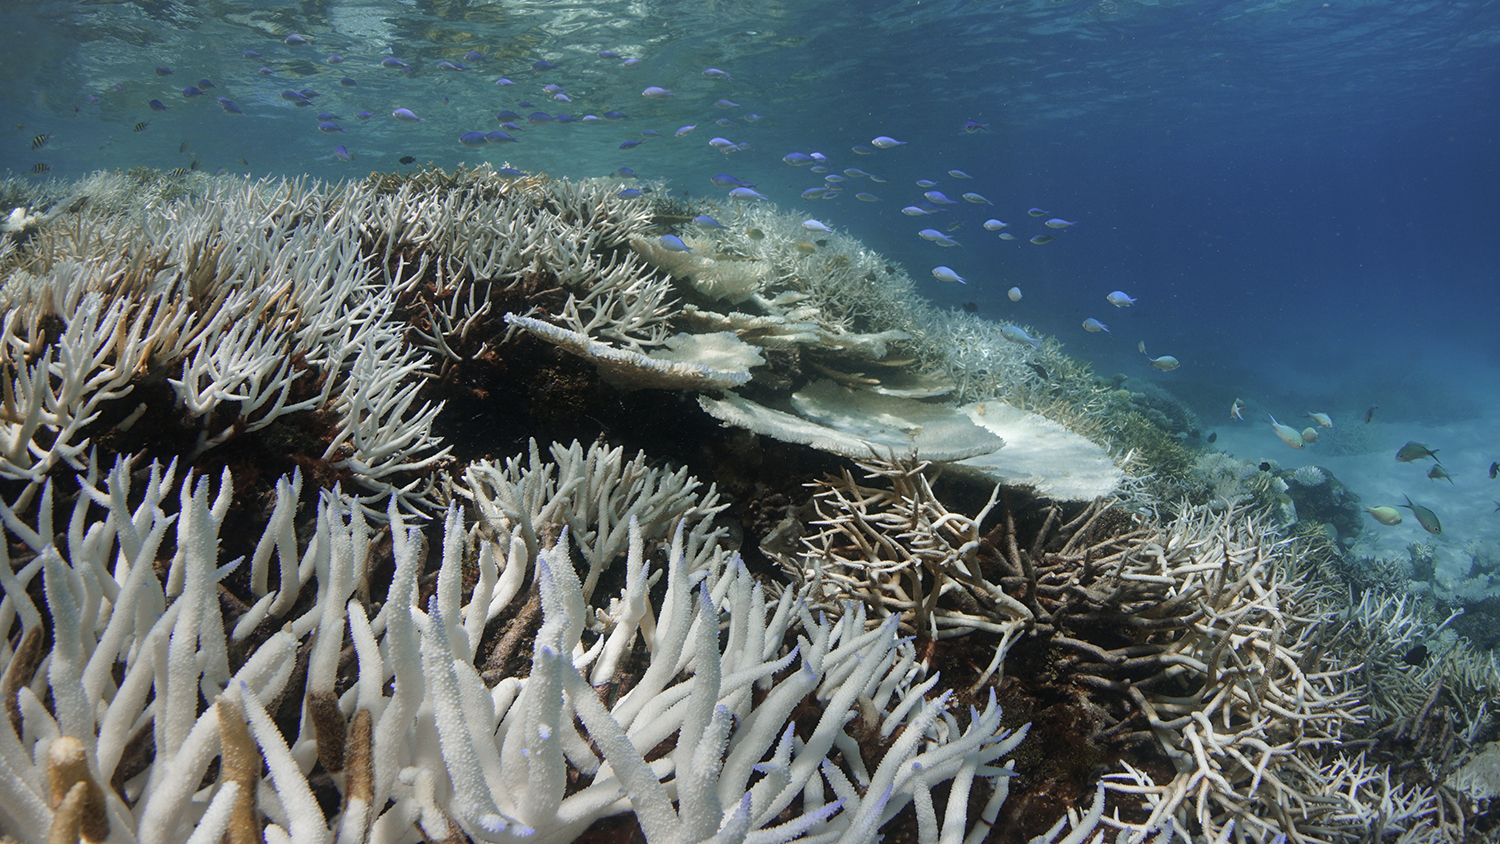 A bleached reef. Photo by The Ocean Agency / XL Catlin Seaview Survey